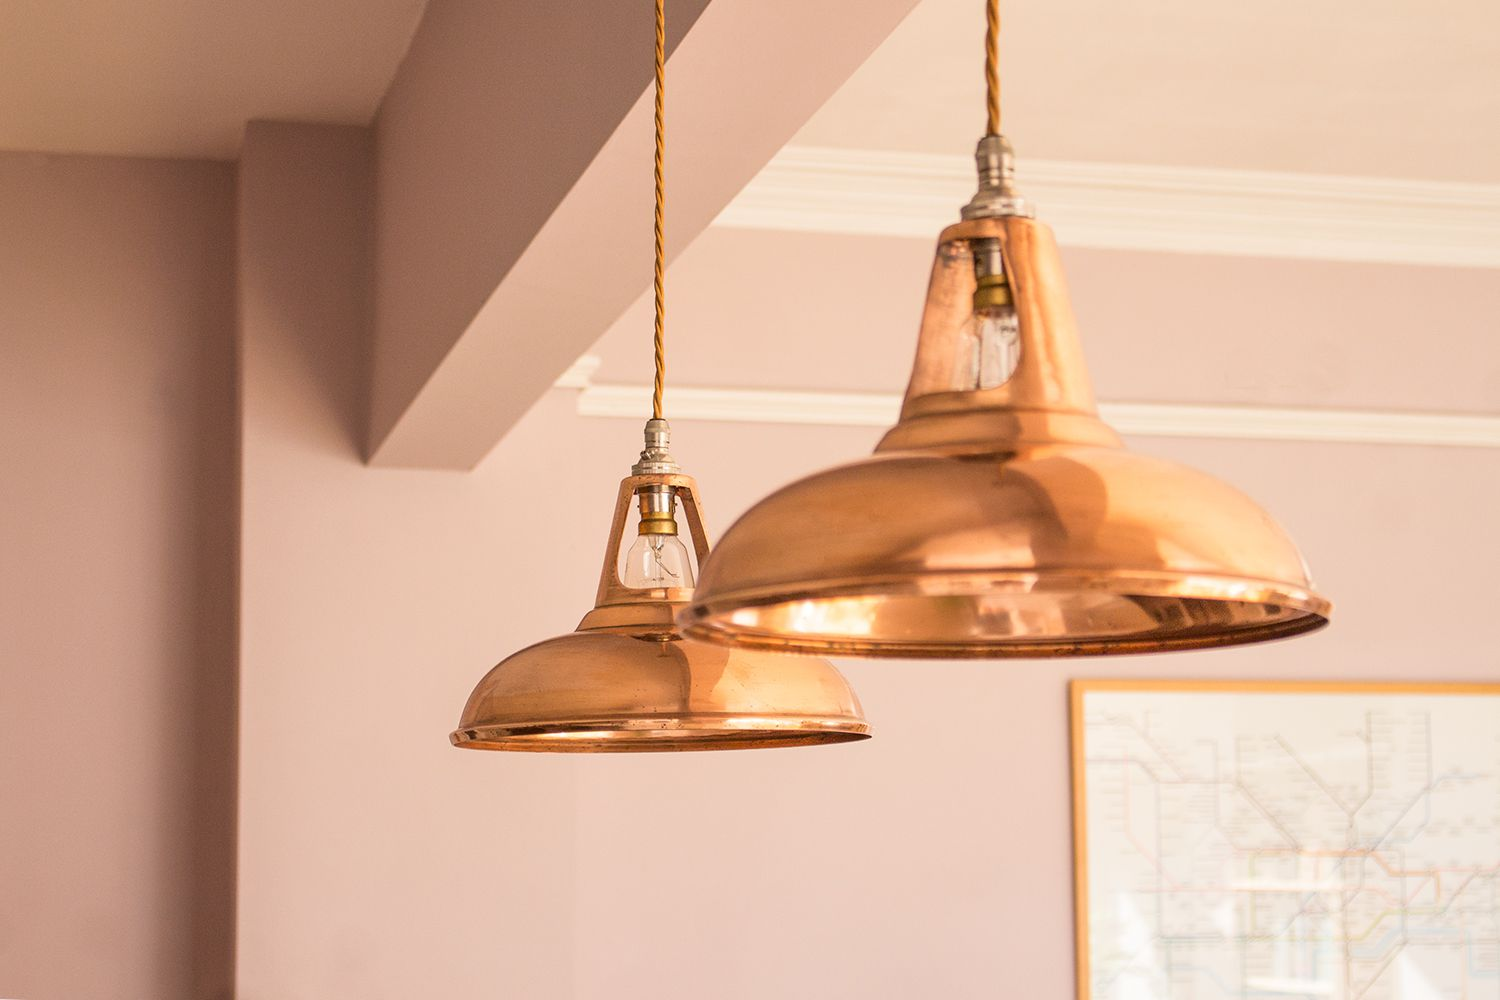 A close up of the two copper pendant lamps which hang over the hob area.